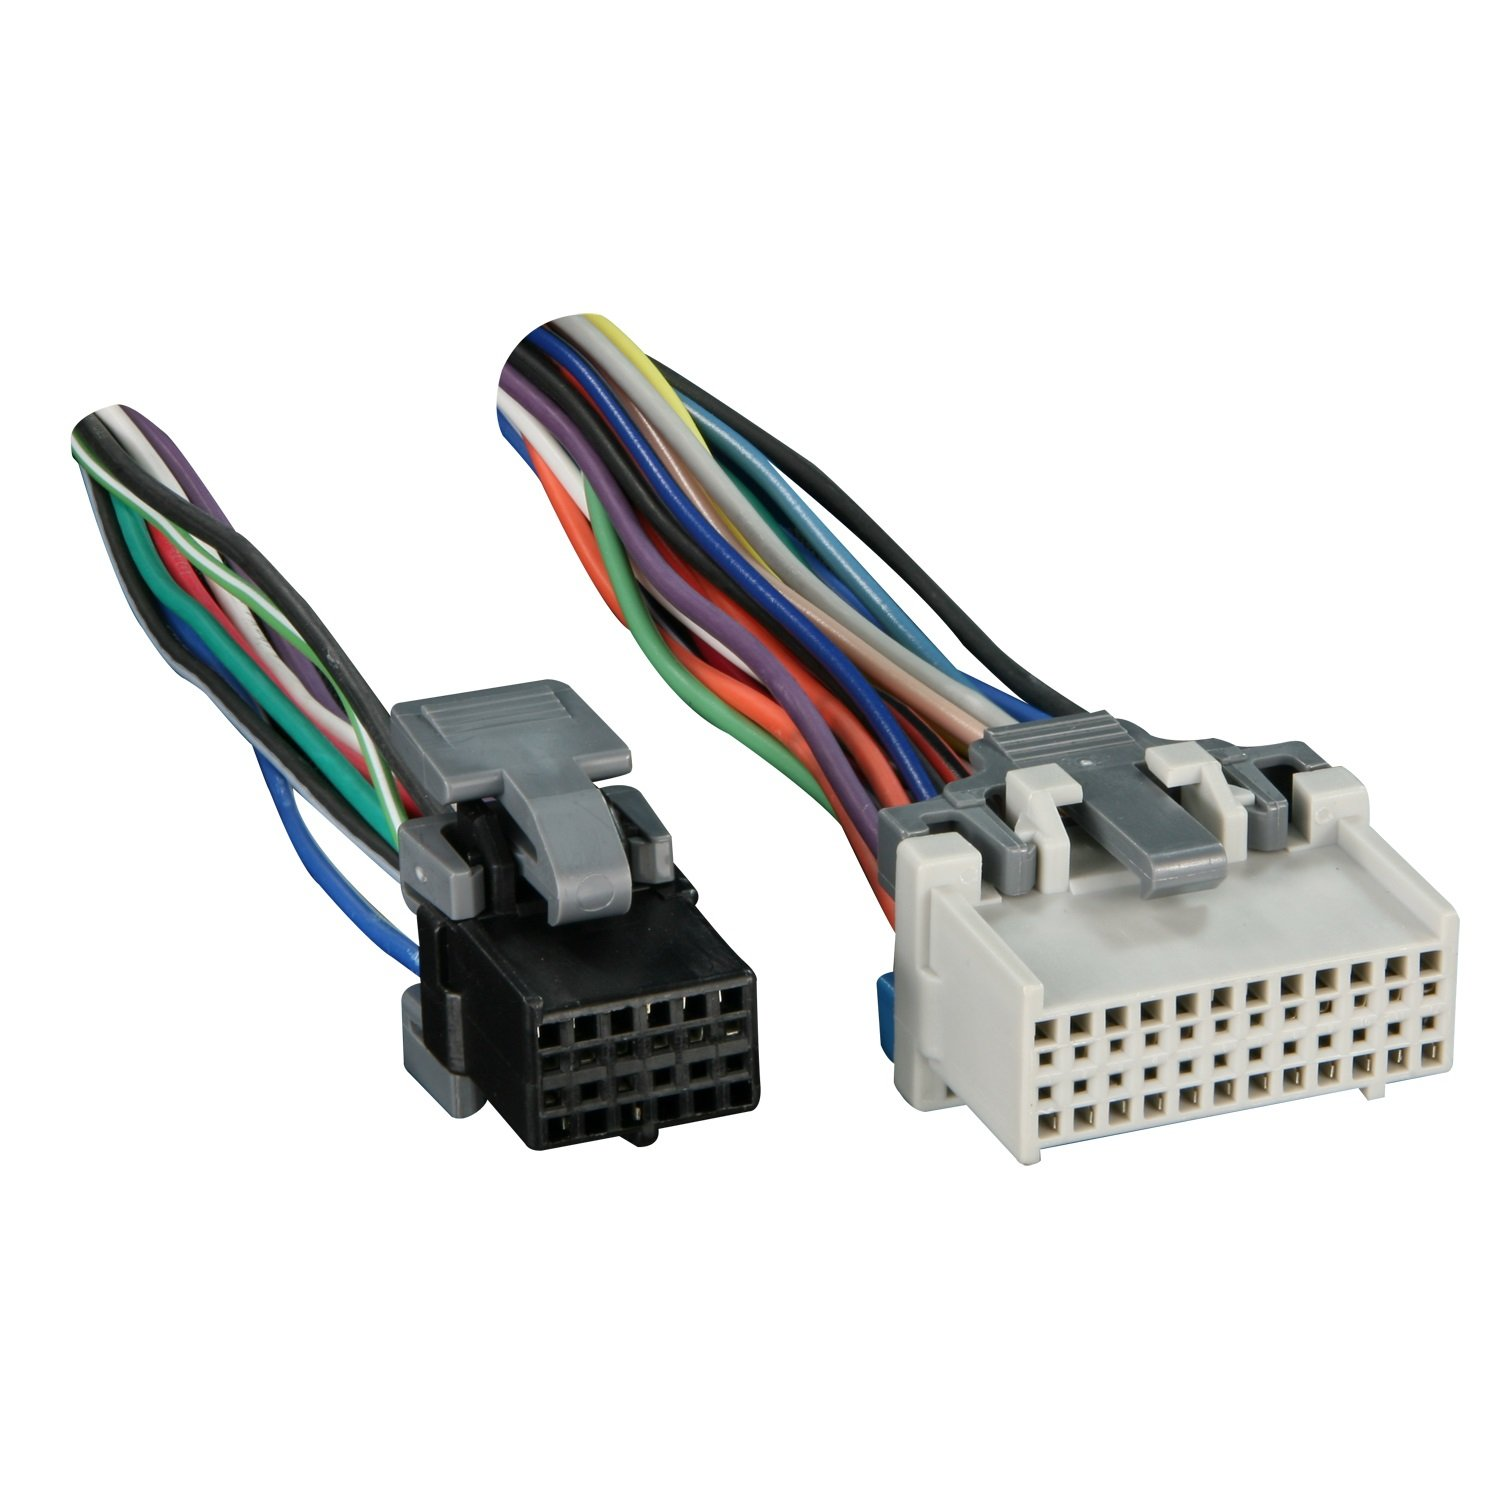 711log4bdML._SL1500_ amazon com metra turbowires 71 2003 1 wiring harness car electronics radio harness at alyssarenee.co